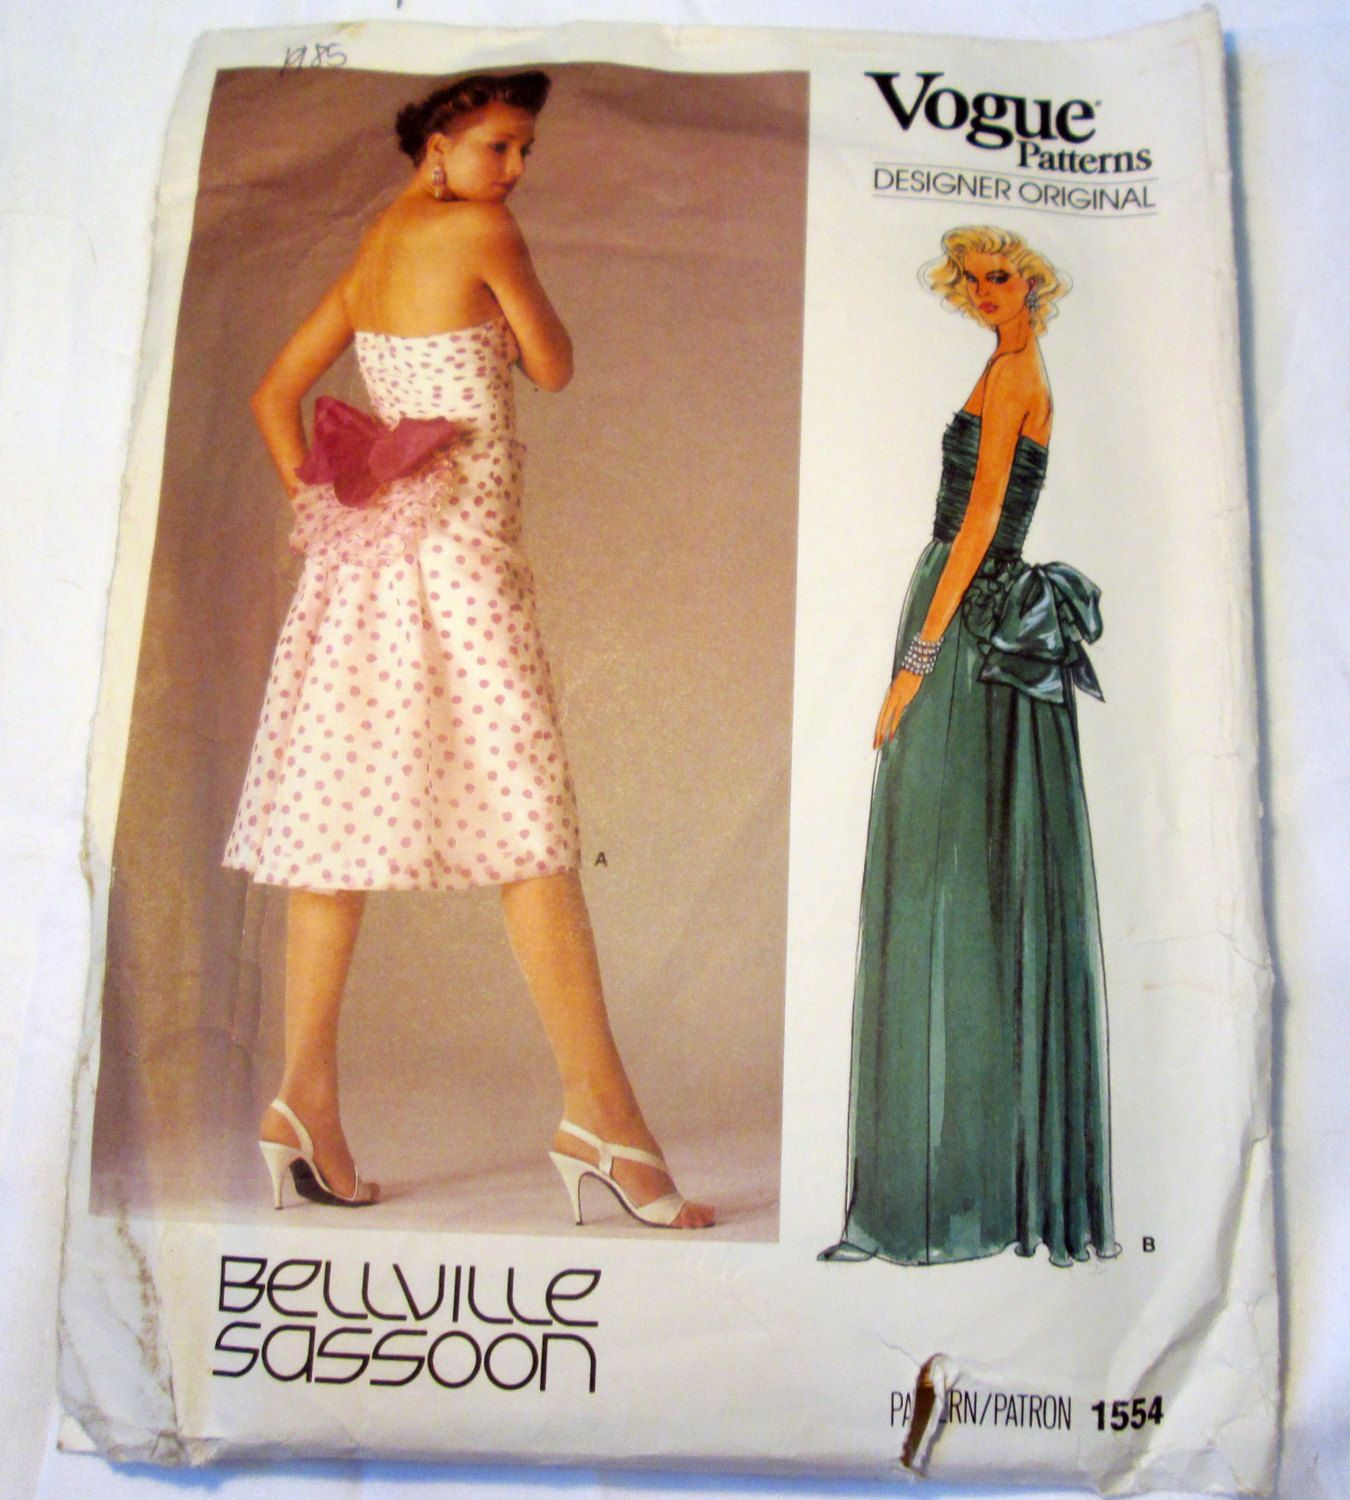 S strapless evening gown cocktail dress bellville sassoon sewing